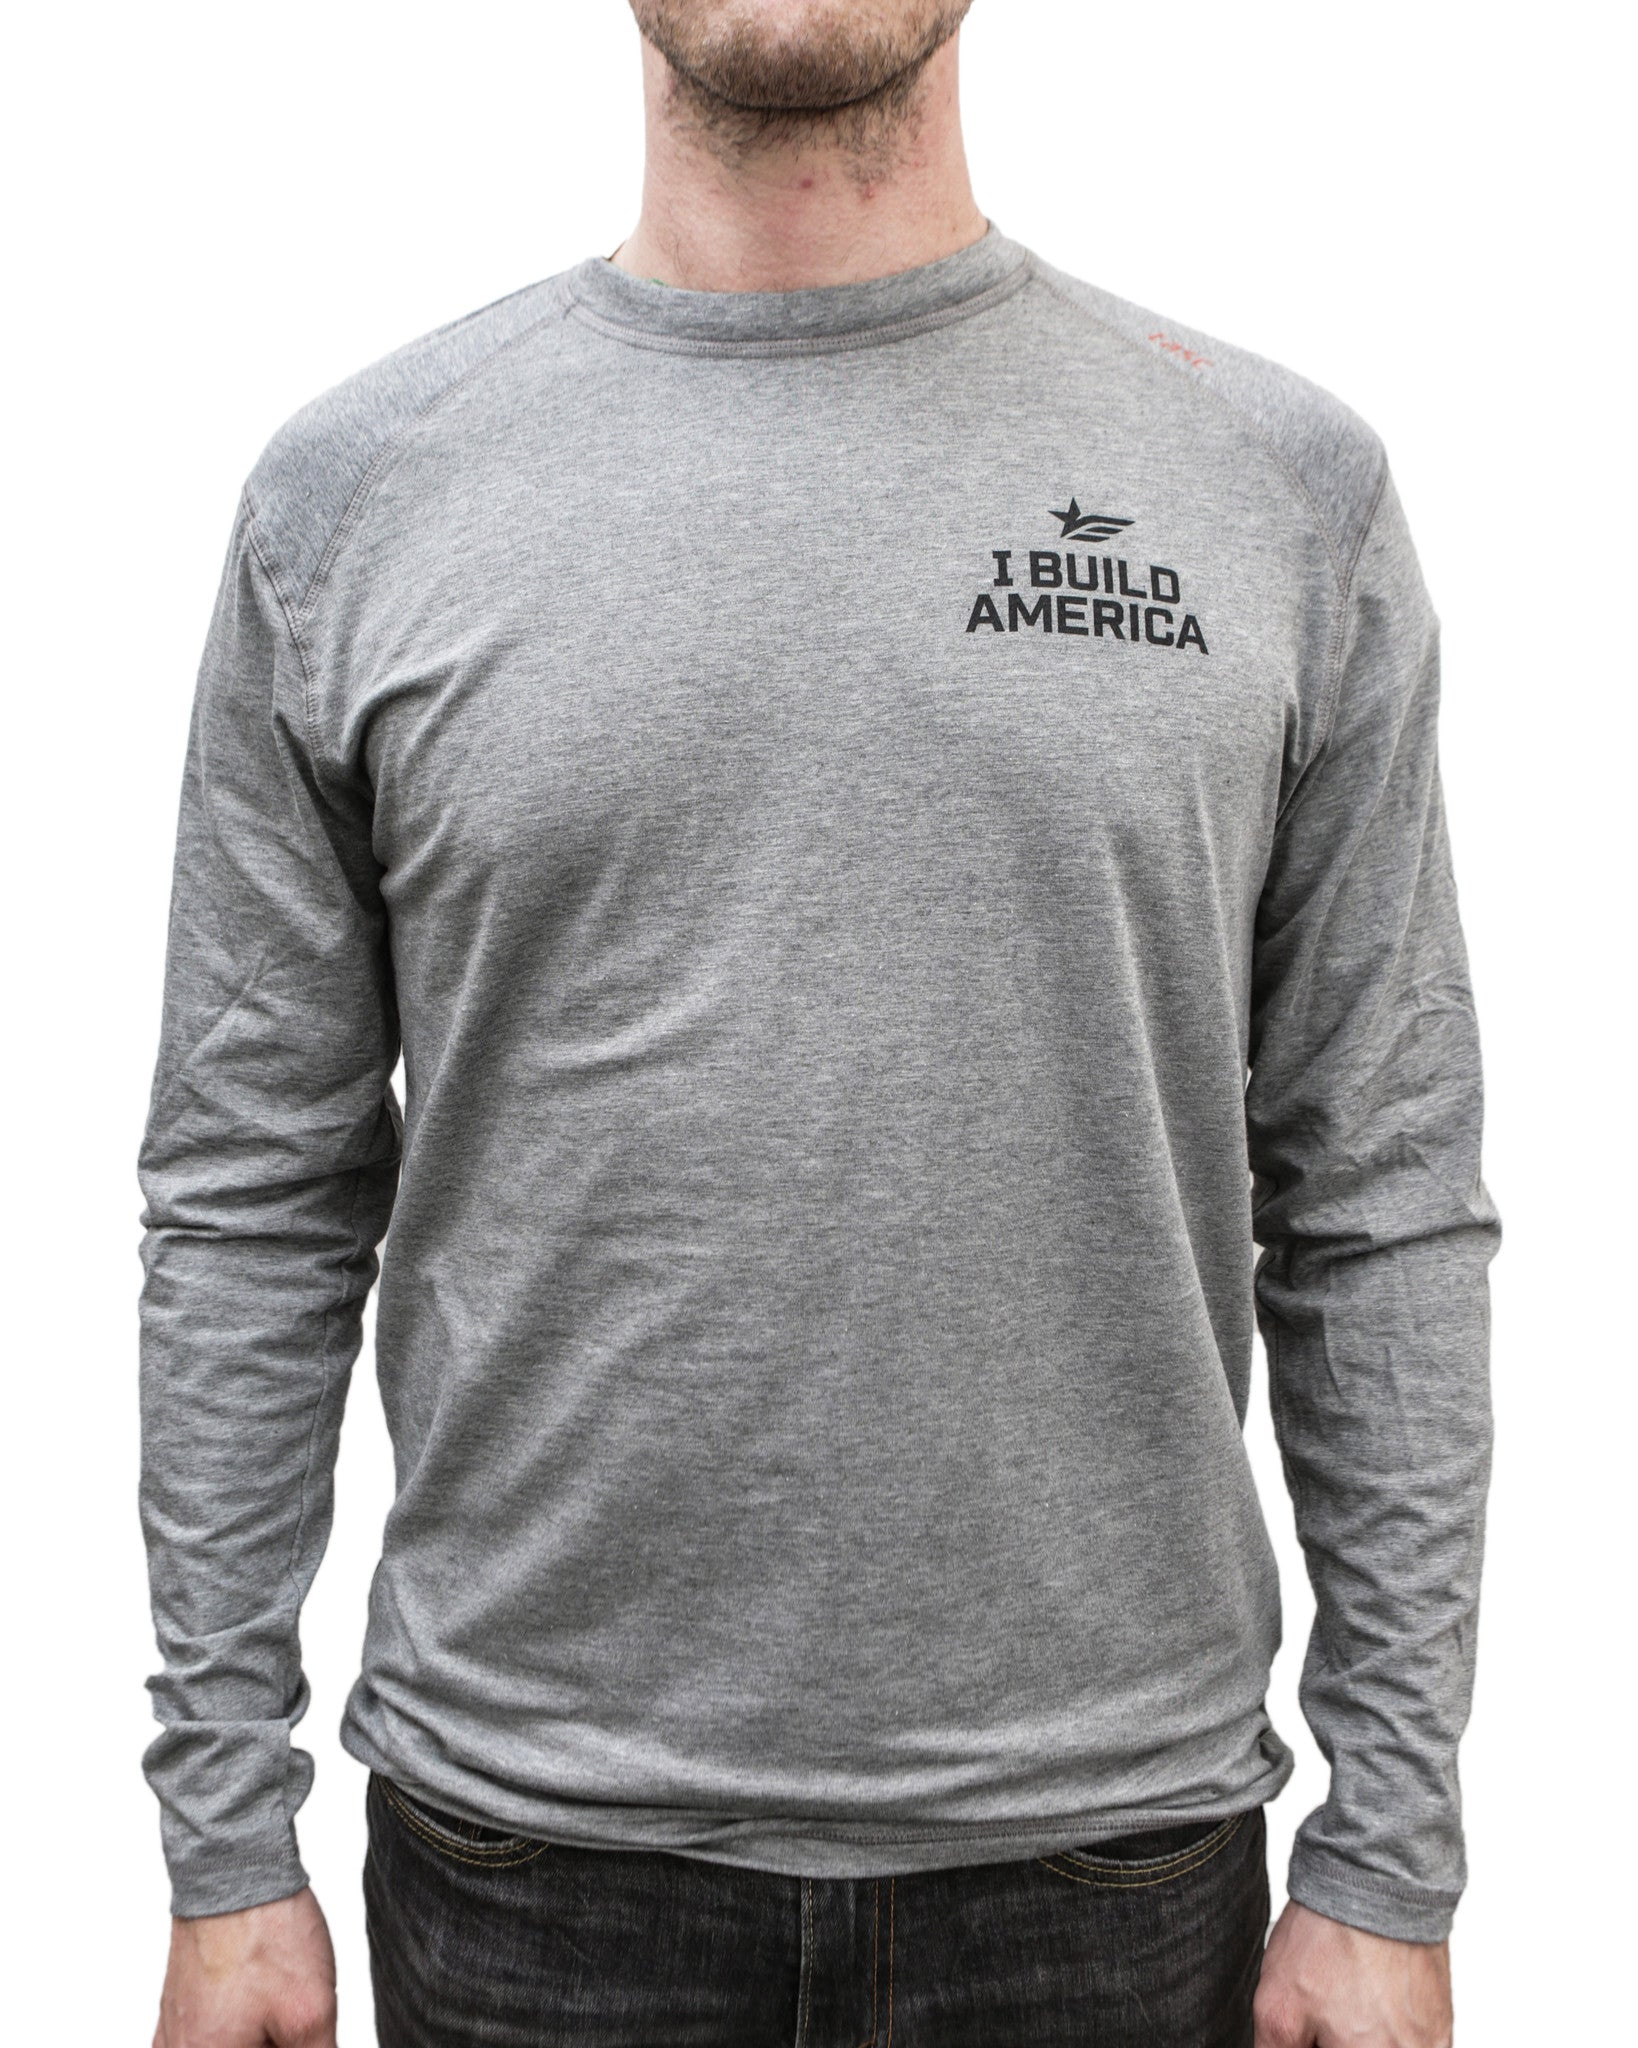 Design your own t-shirt long sleeve - I Build America Long Sleeve T Shirt W Logo Arm I Build America Store